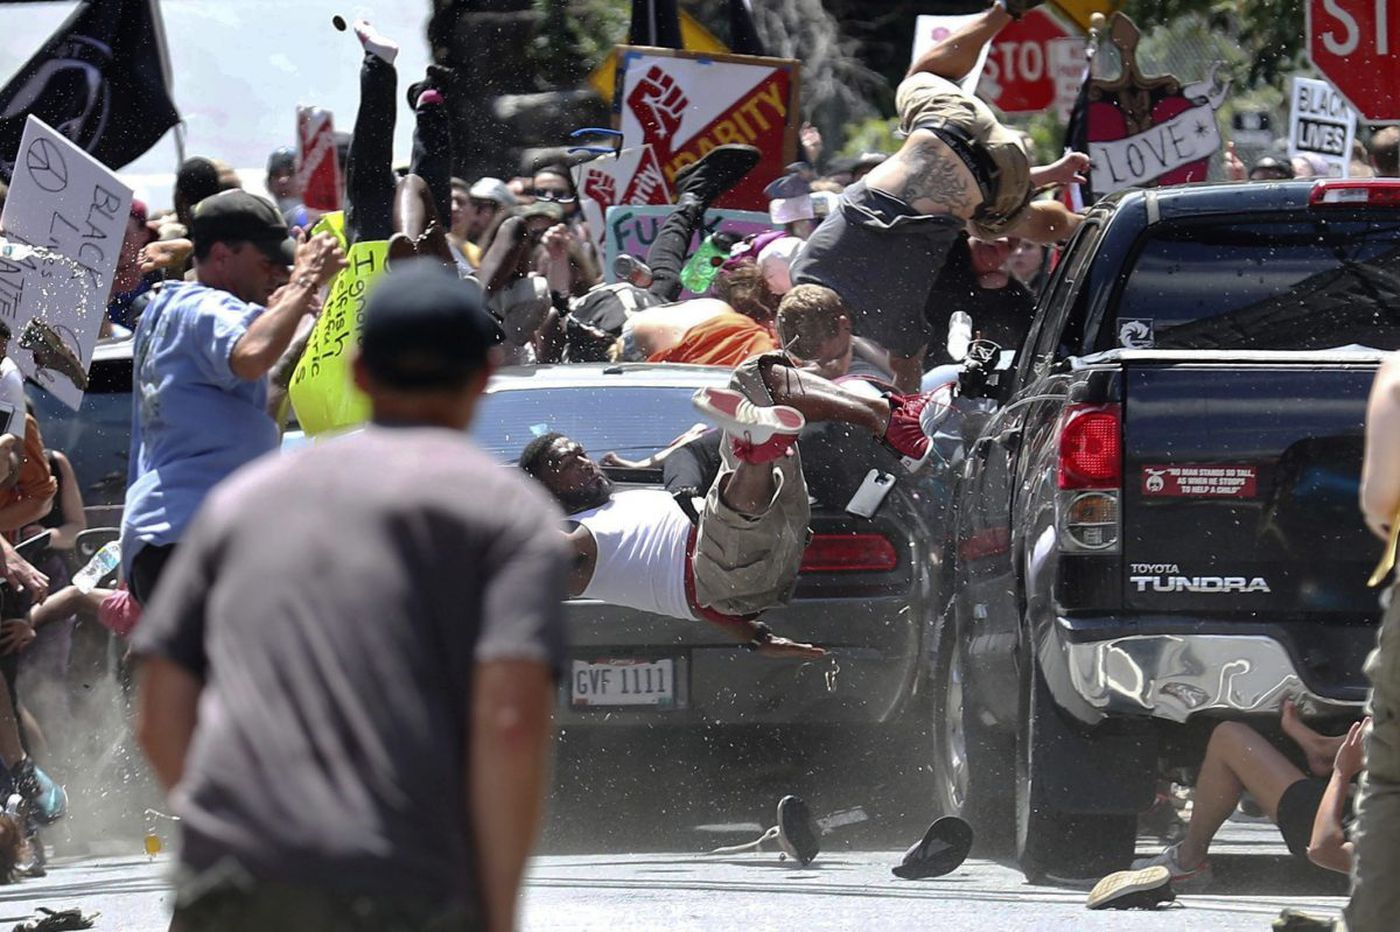 Shocking images from Charlottesville cast new light on white nationalists